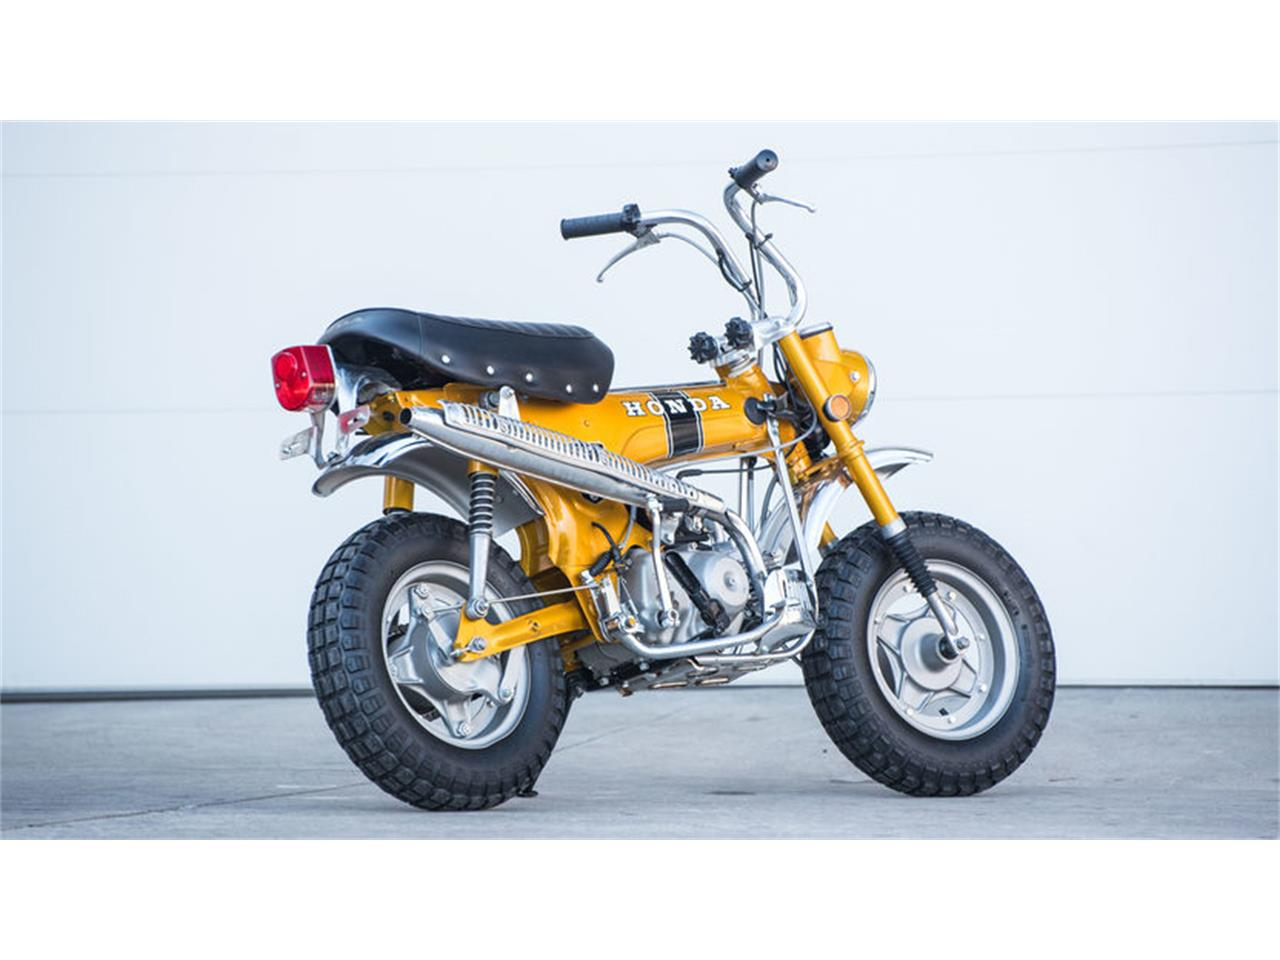 1970 Honda Trail 70 For Sale Cc 929972 Ct70 Moped Large Picture Of Jxkk